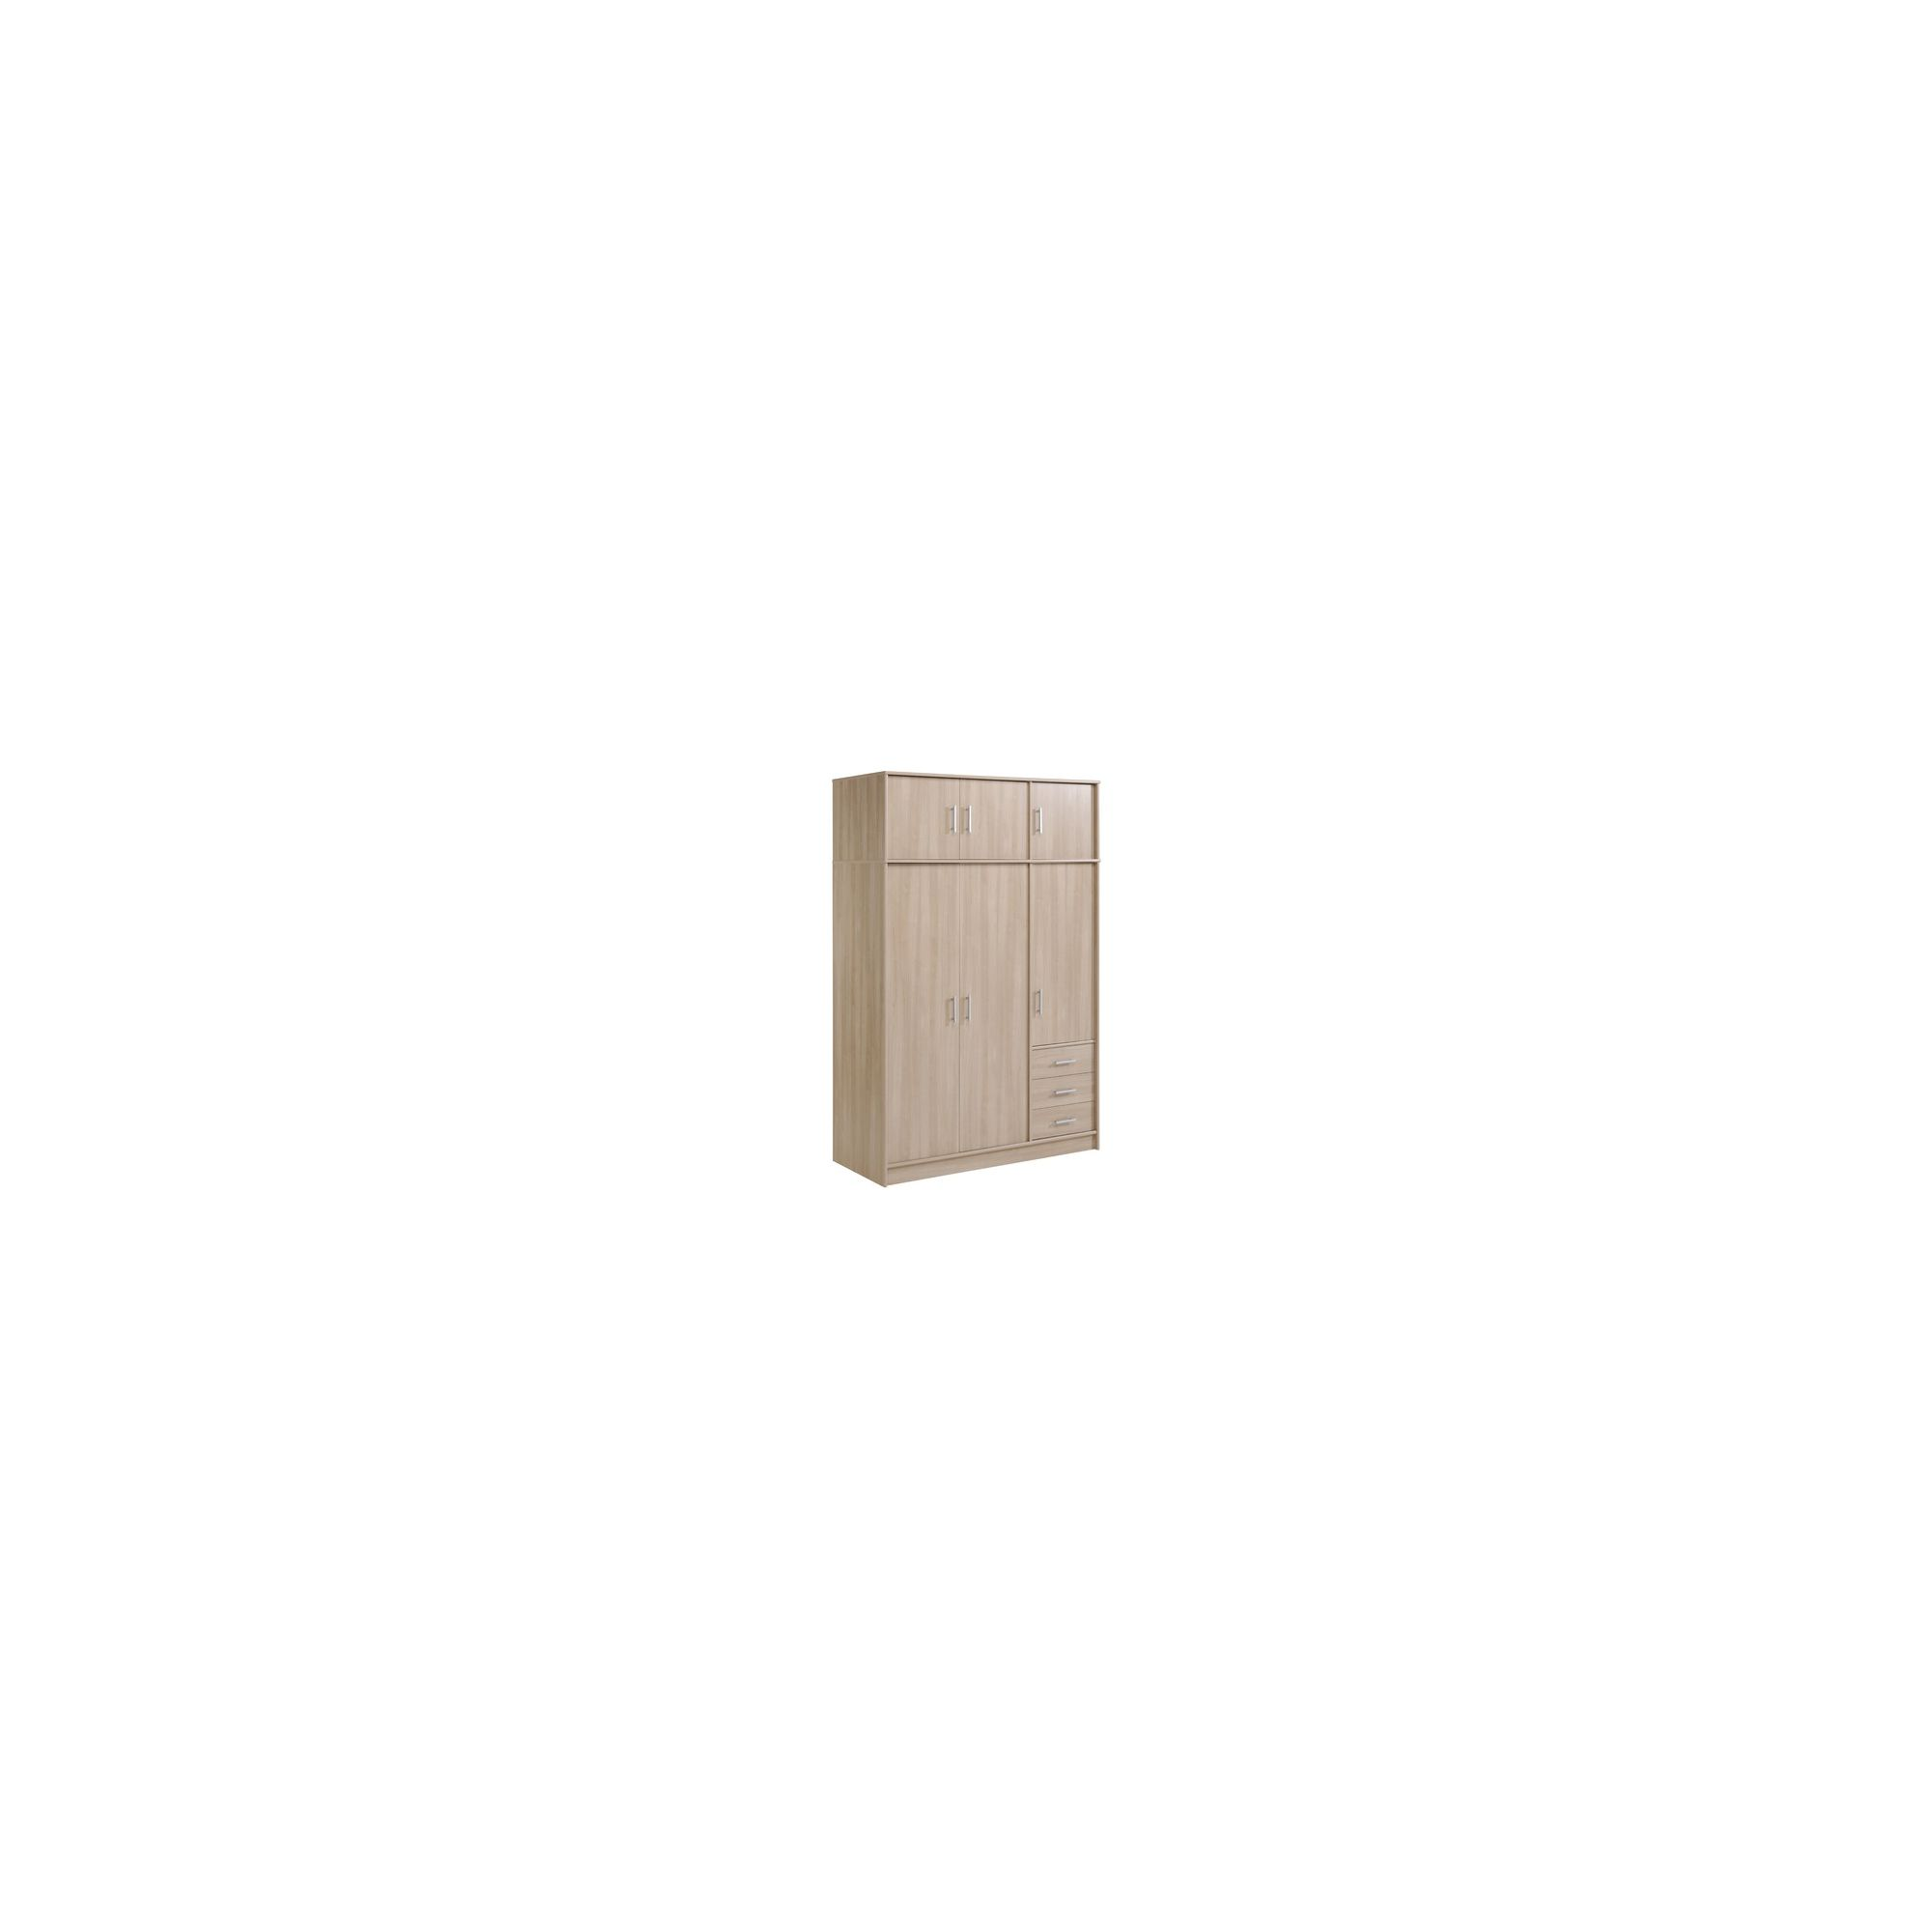 Parisot Essential Wardrobe with 6 Doors and 3 Drawers - Pear Tree at Tesco Direct